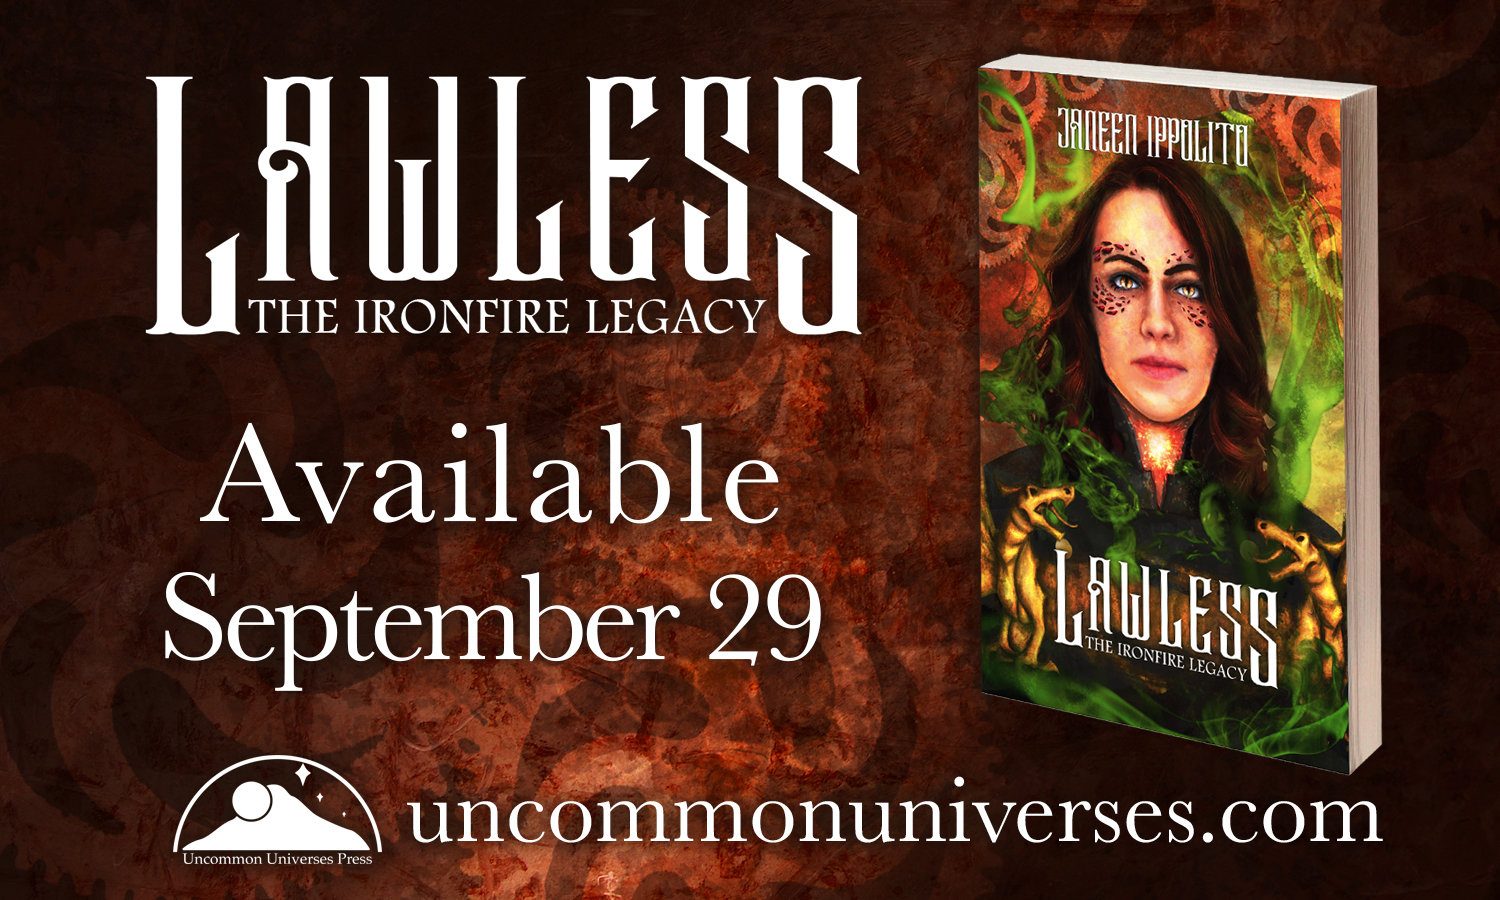 LawlessAvailableSept29